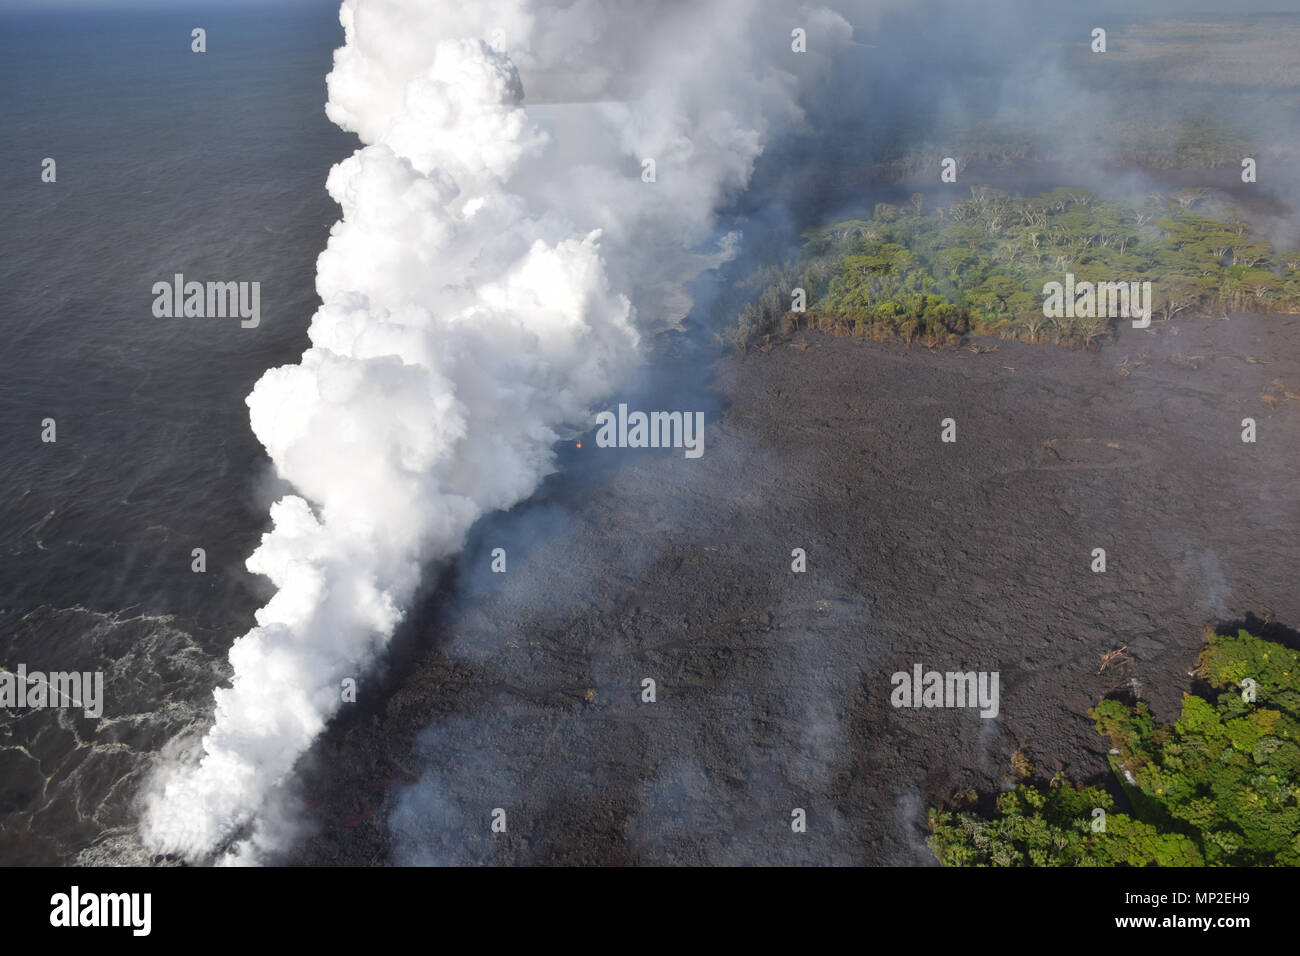 Lava and poisonous sulfur dioxide plumes rise from fissure 20 as the molten magma reaches the ocean from the eruption of the Kilauea volcano May 20, 2018 in Pahoa, Hawaii. Hot lava entering the ocean creates a dense white plume called 'laze' (short for 'lava haze'). Laze is formed as hot lava boils seawater to dryness. The process leads to a series of chemical reactions that create a billowing white cloud composed of a condensed seawater steam, hydrochloric acid gas, and tiny shards of volcanic glass. The cloud is as corrosive as dilute battery acid, and should be avoided. - Stock Image